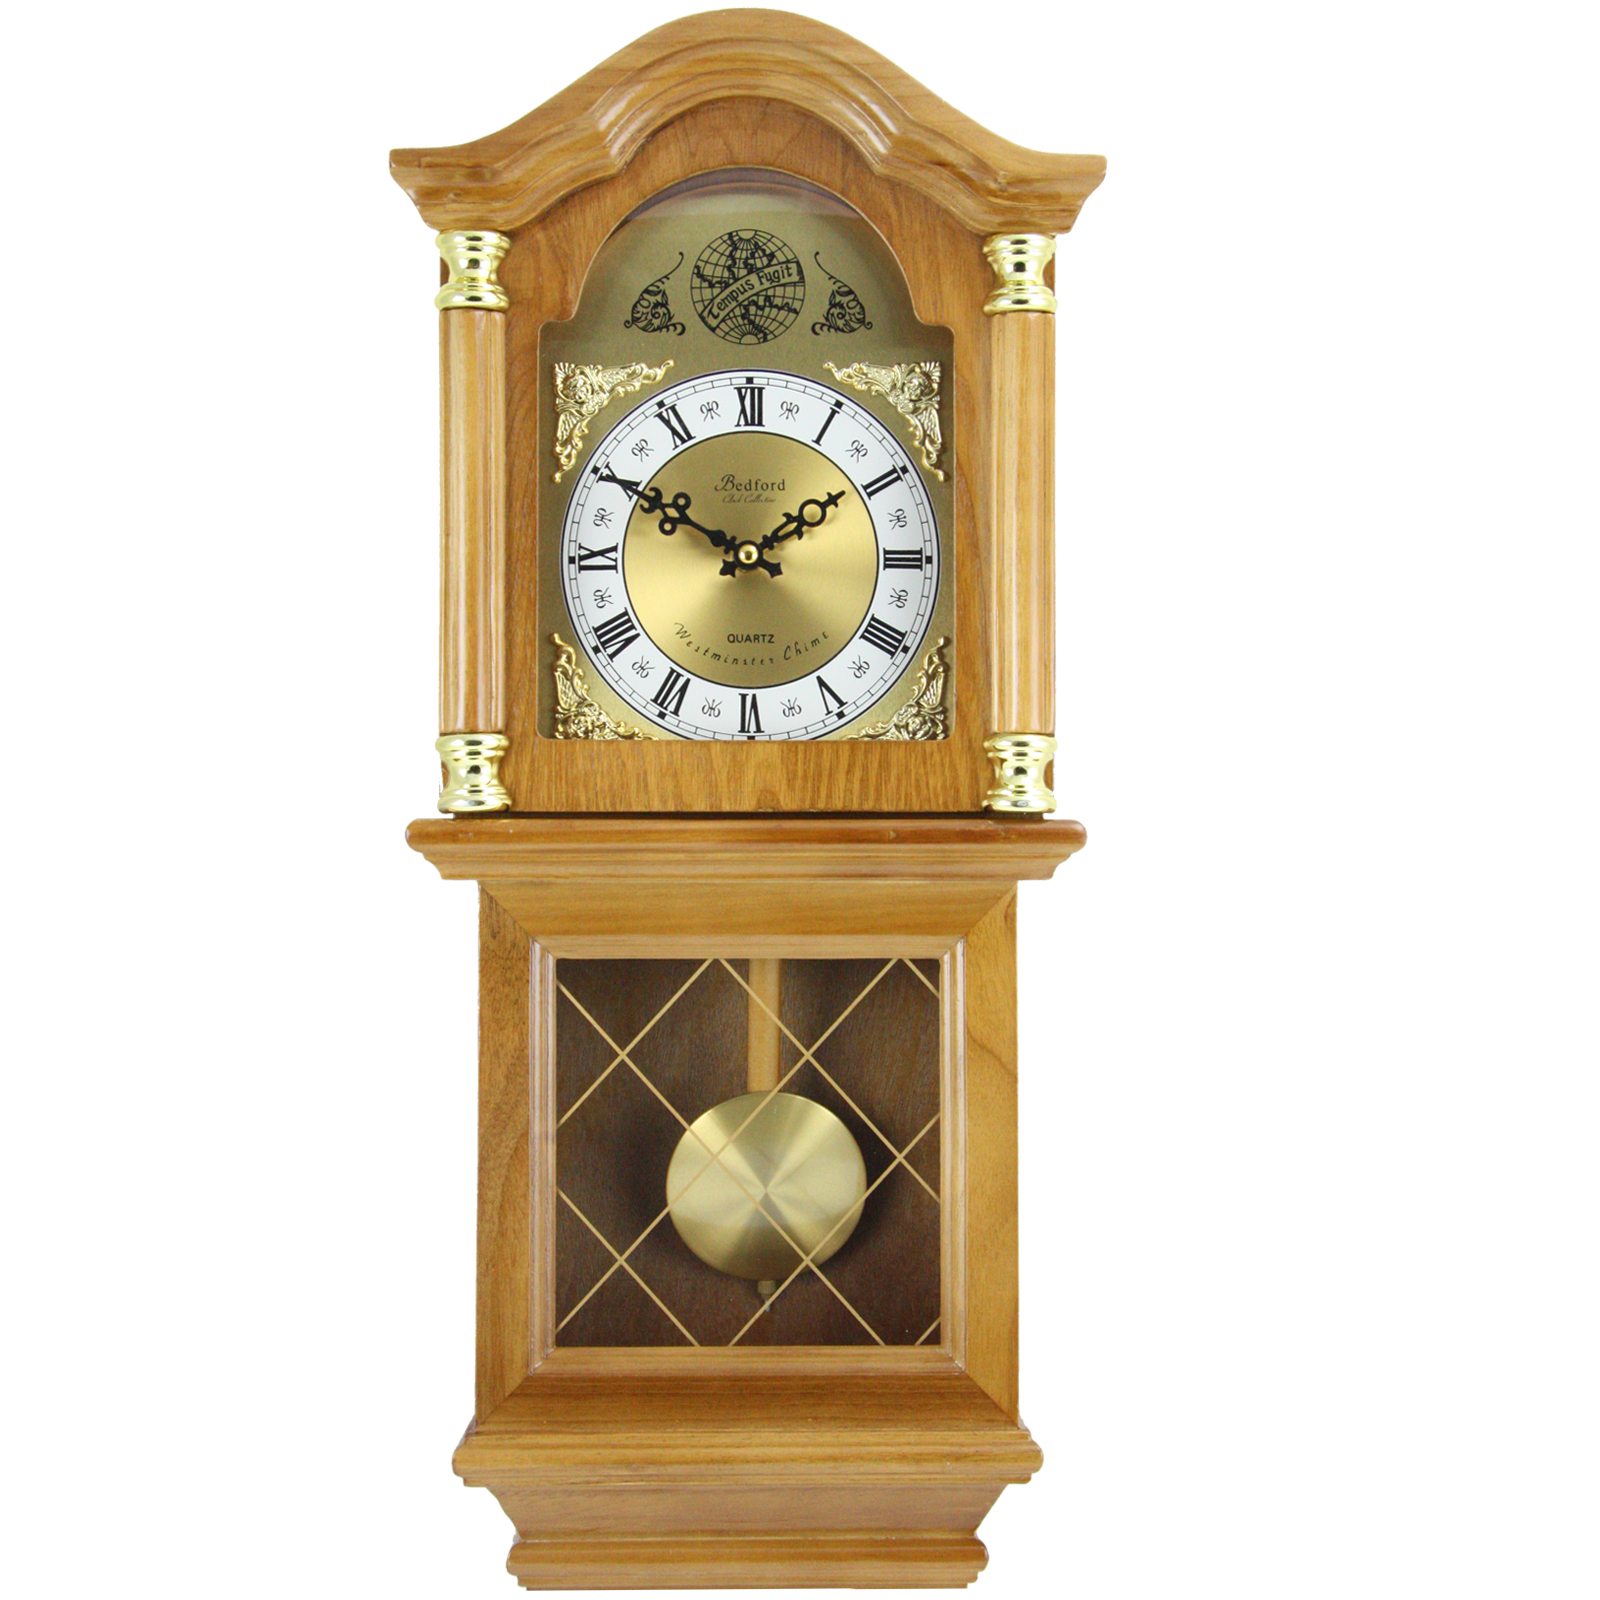 Bedford Clock Collection Classic Golden Oak Chiming Wall Clock With Swinging Pendulum by Supplier Generic